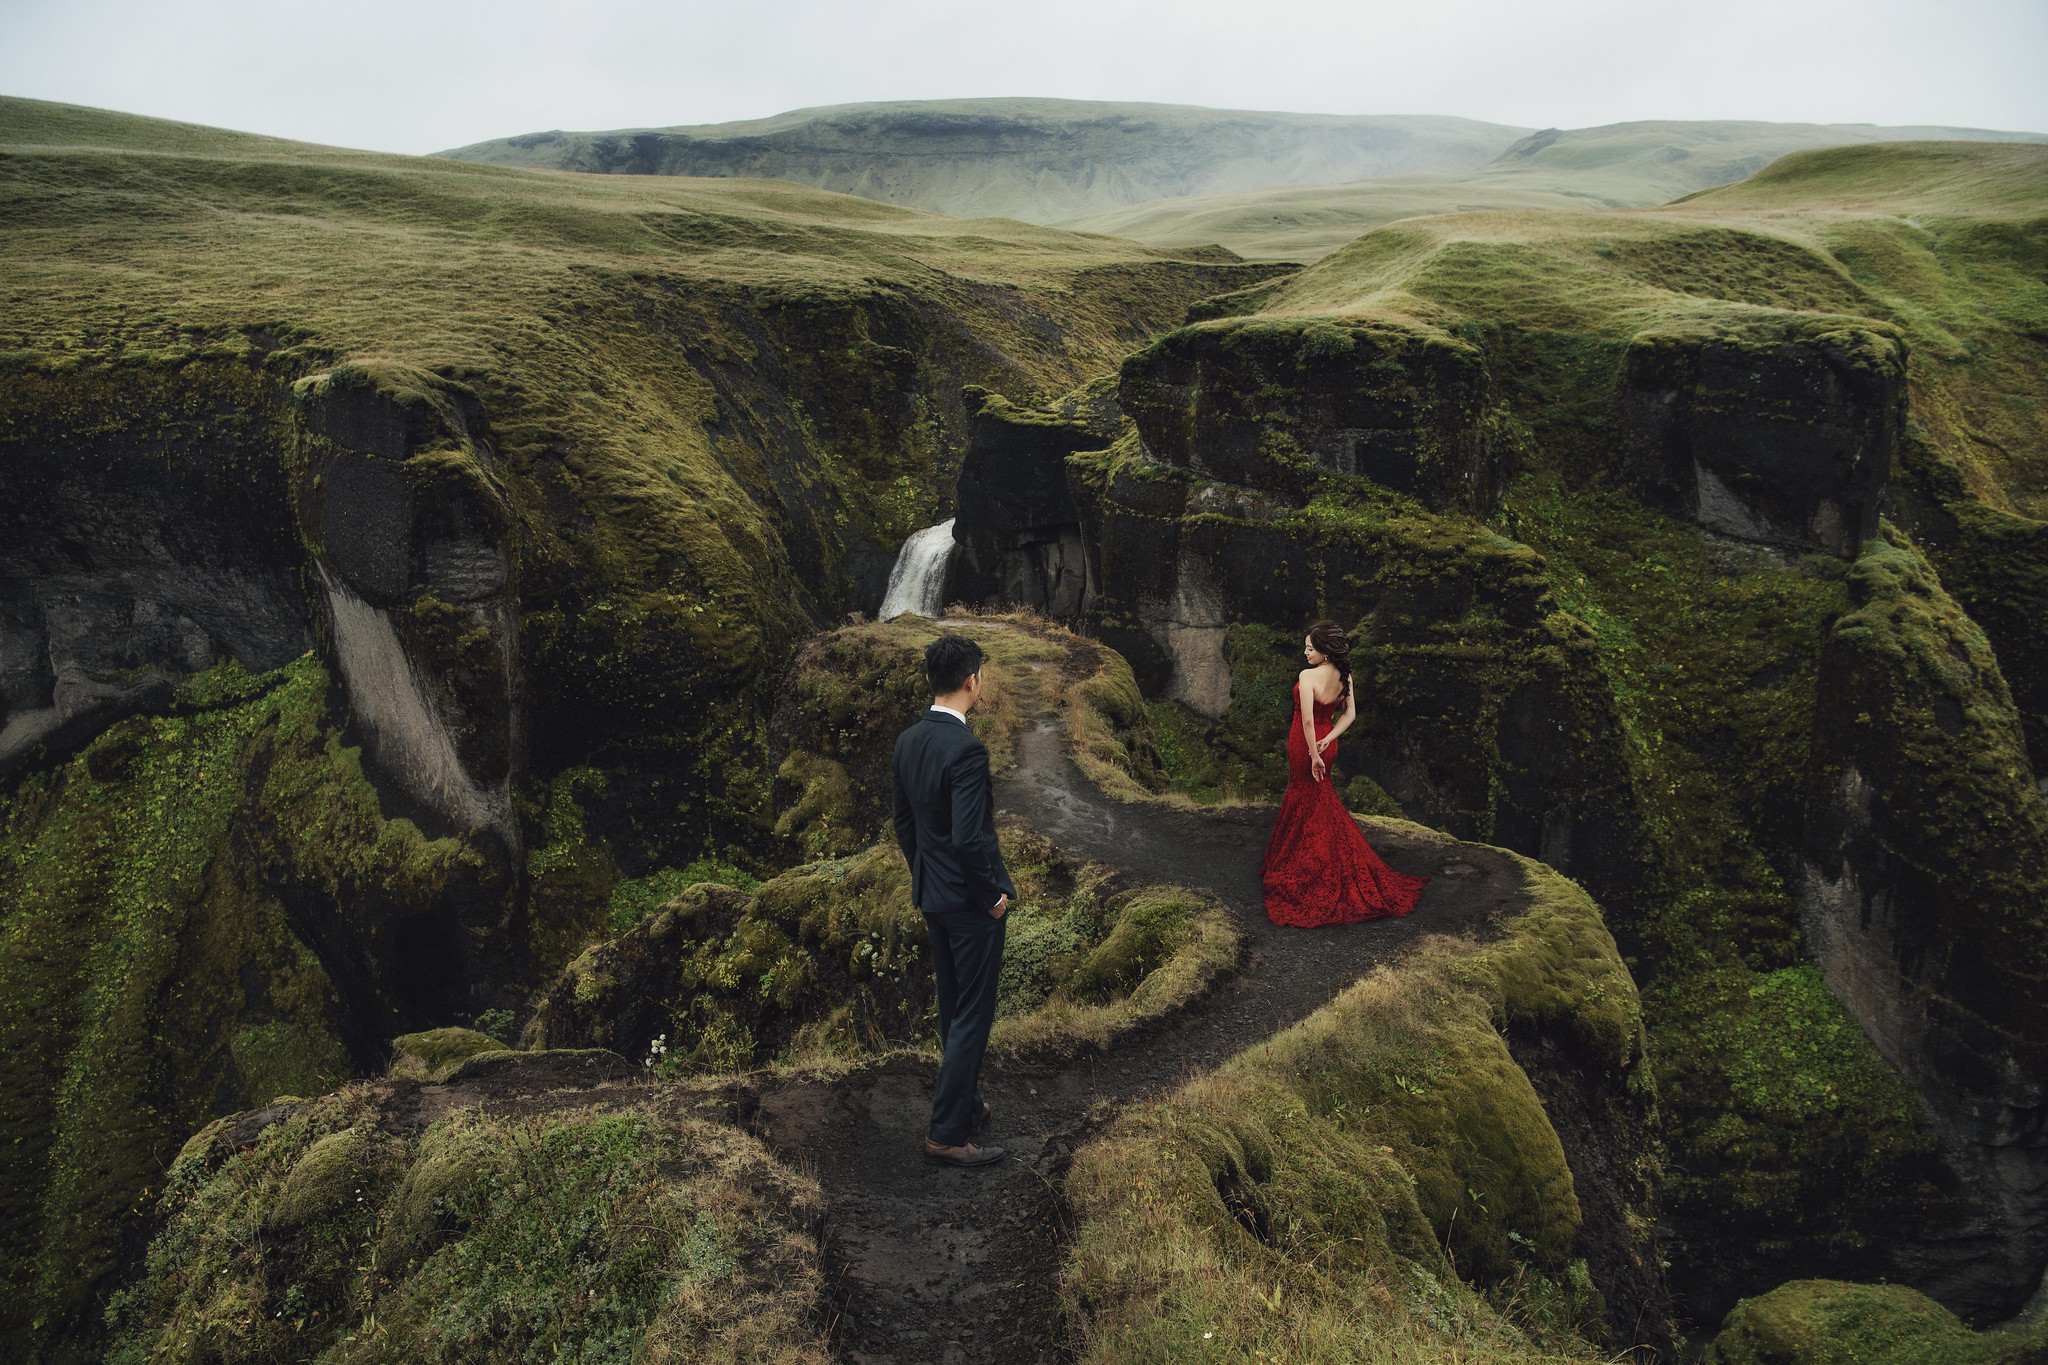 婚攝東法, Donfer, Donfer Photography, EASTERN WEDDING, Iceland, 冰島婚紗